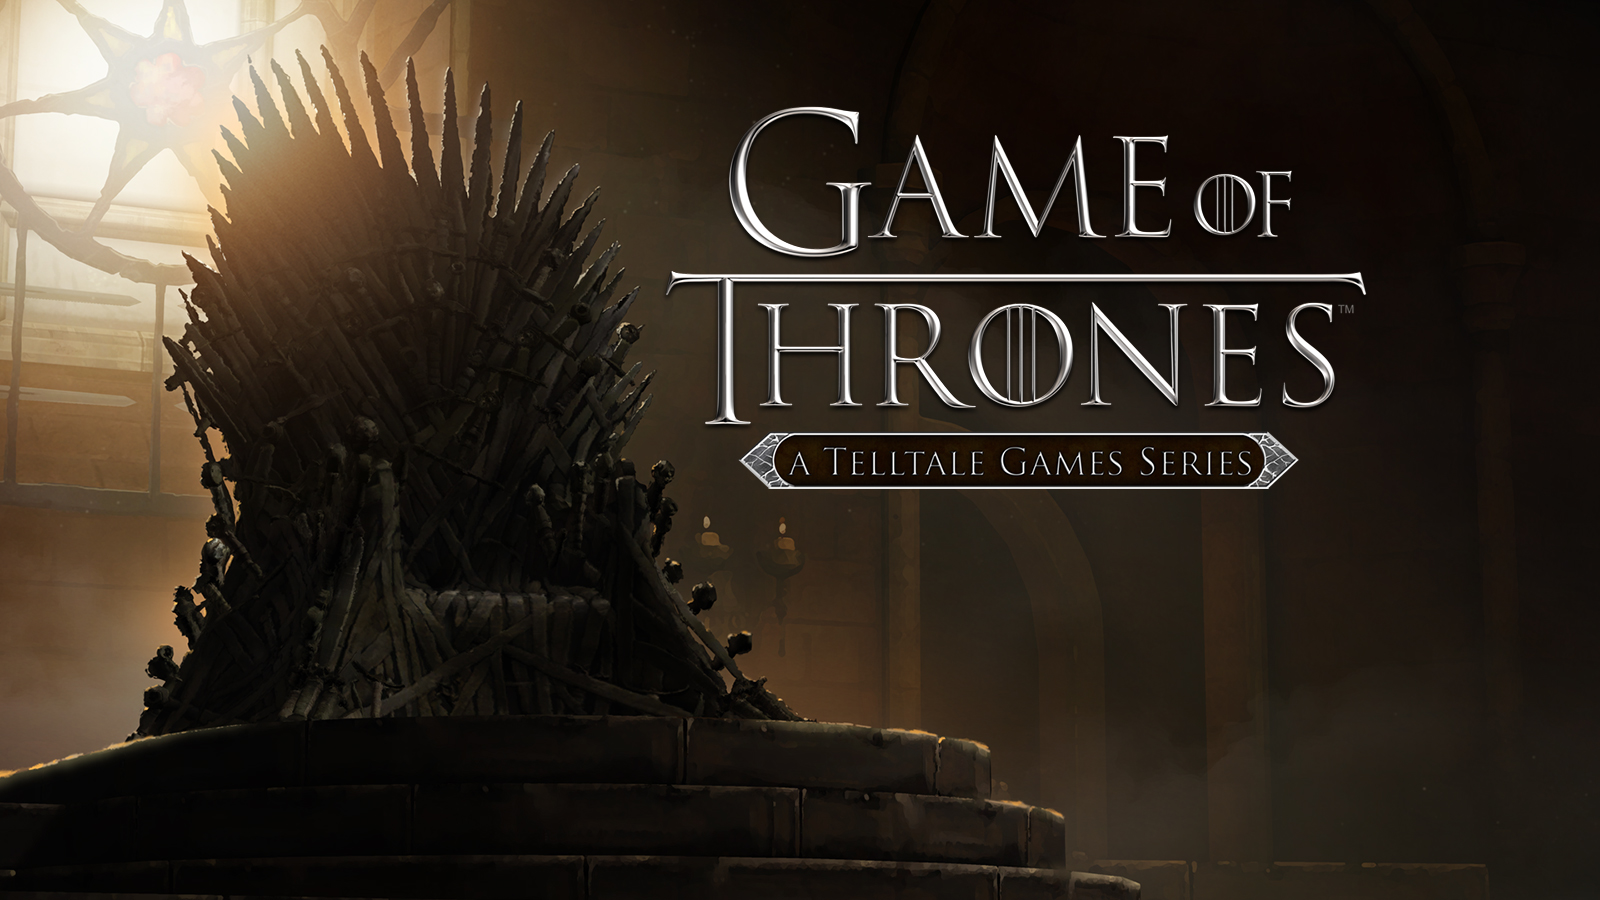 Game Of Thrones Game Of Thrones Wallpaper Hd 25778 Hd